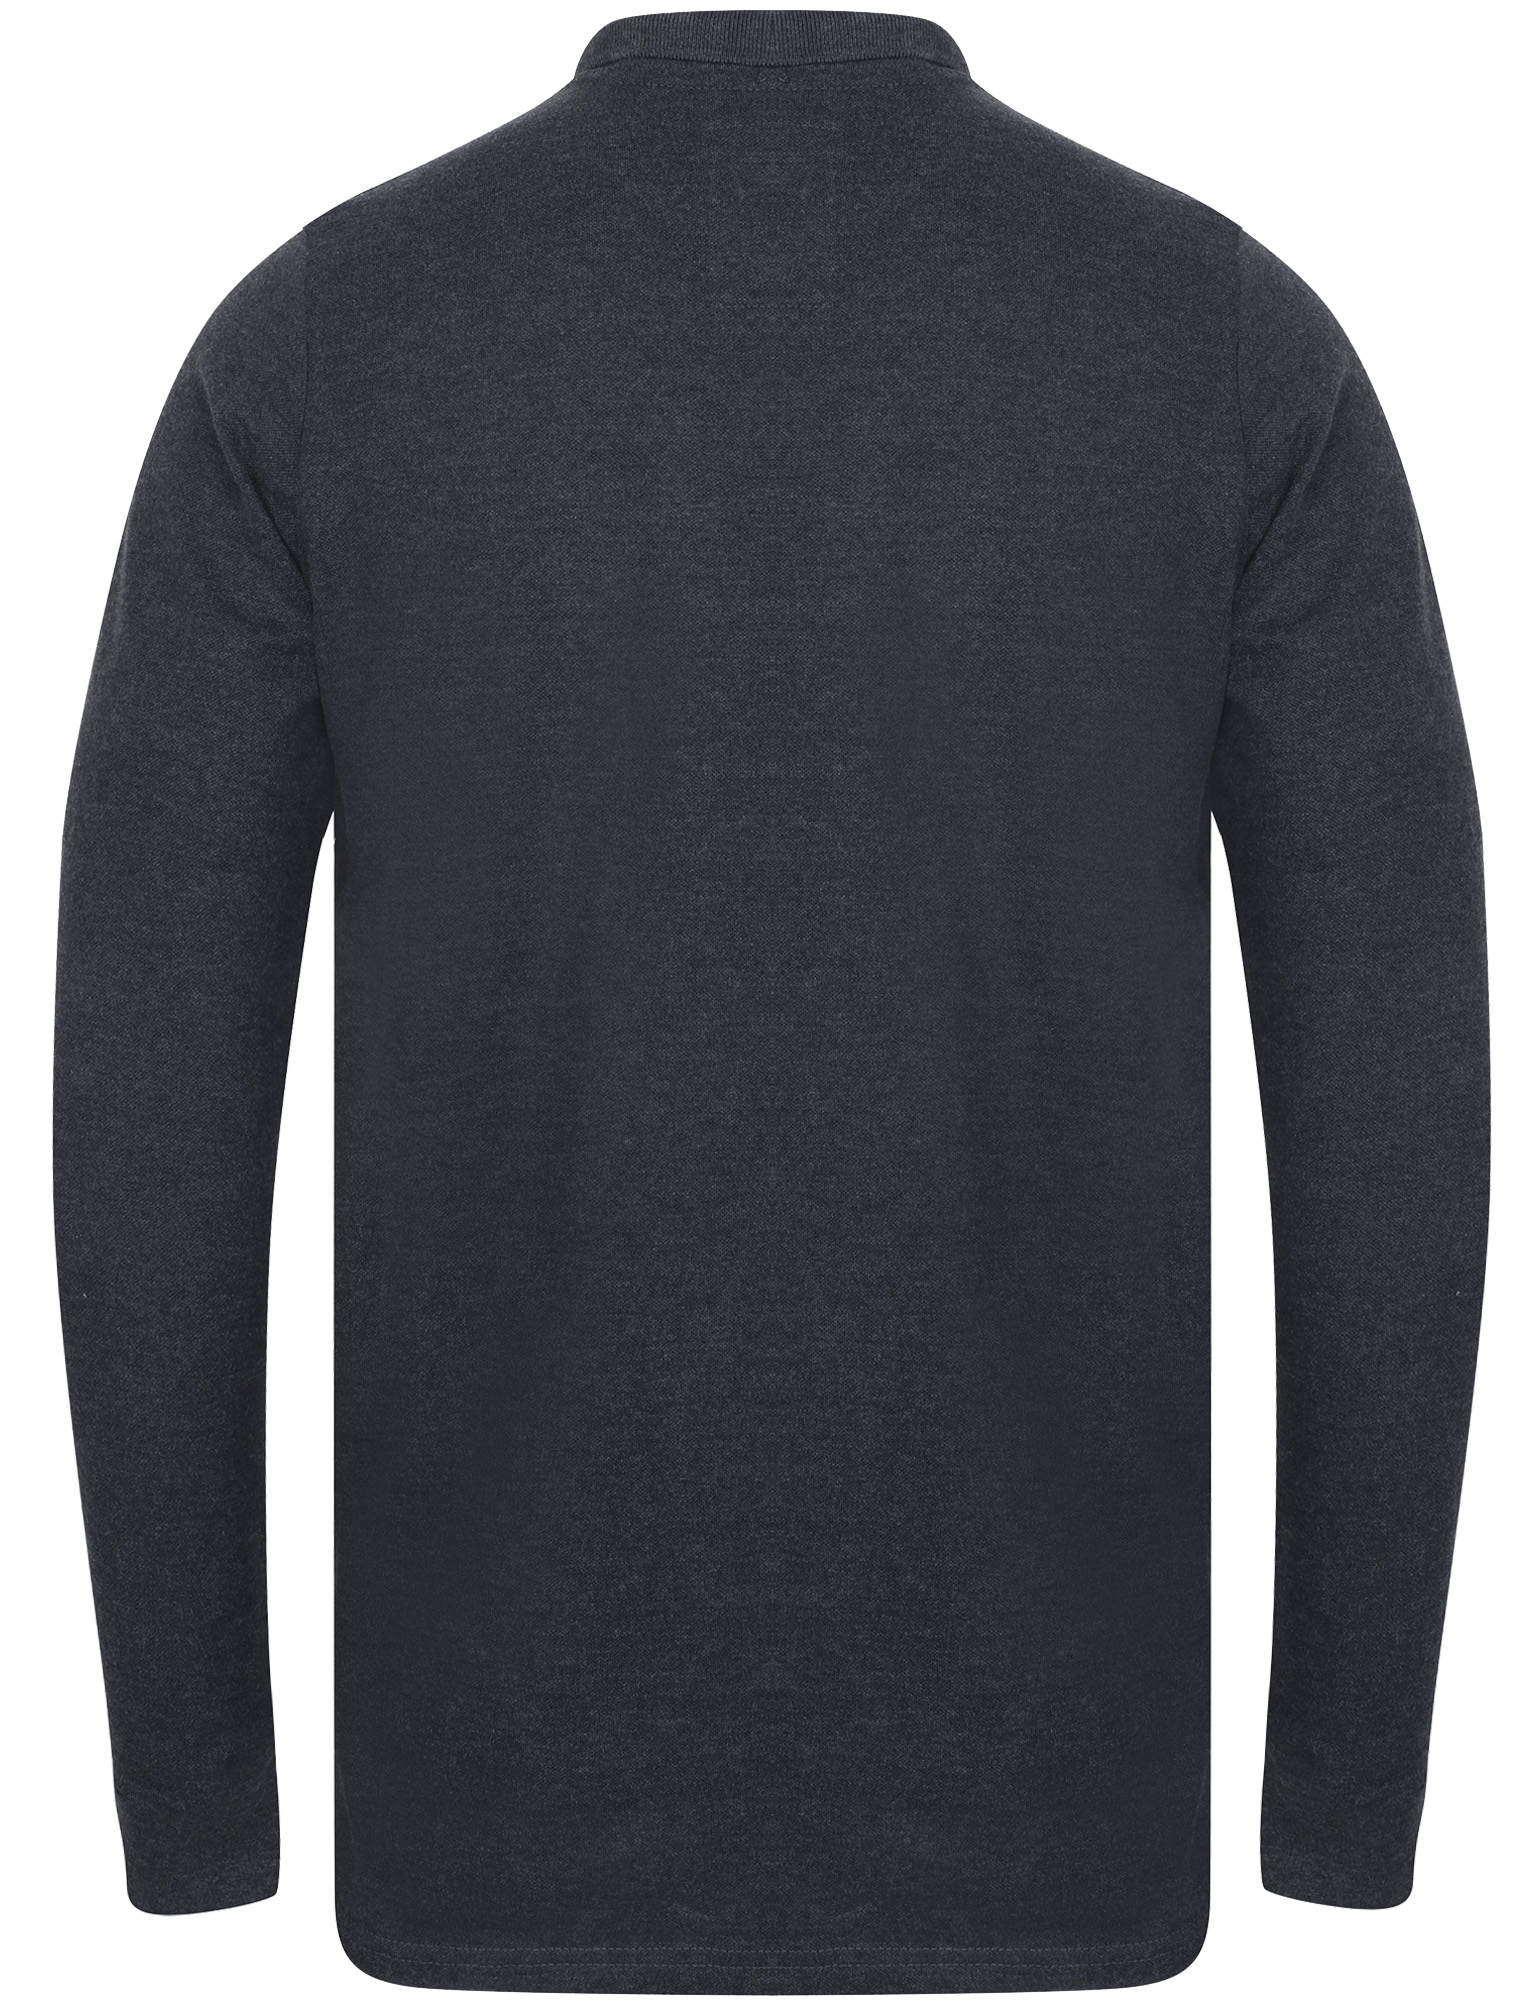 Tokyo-Laundry-Men-039-s-Cosenza-Long-Sleeve-Polo-Shirt-Top-Size-S-M-L-XL-XXL thumbnail 5